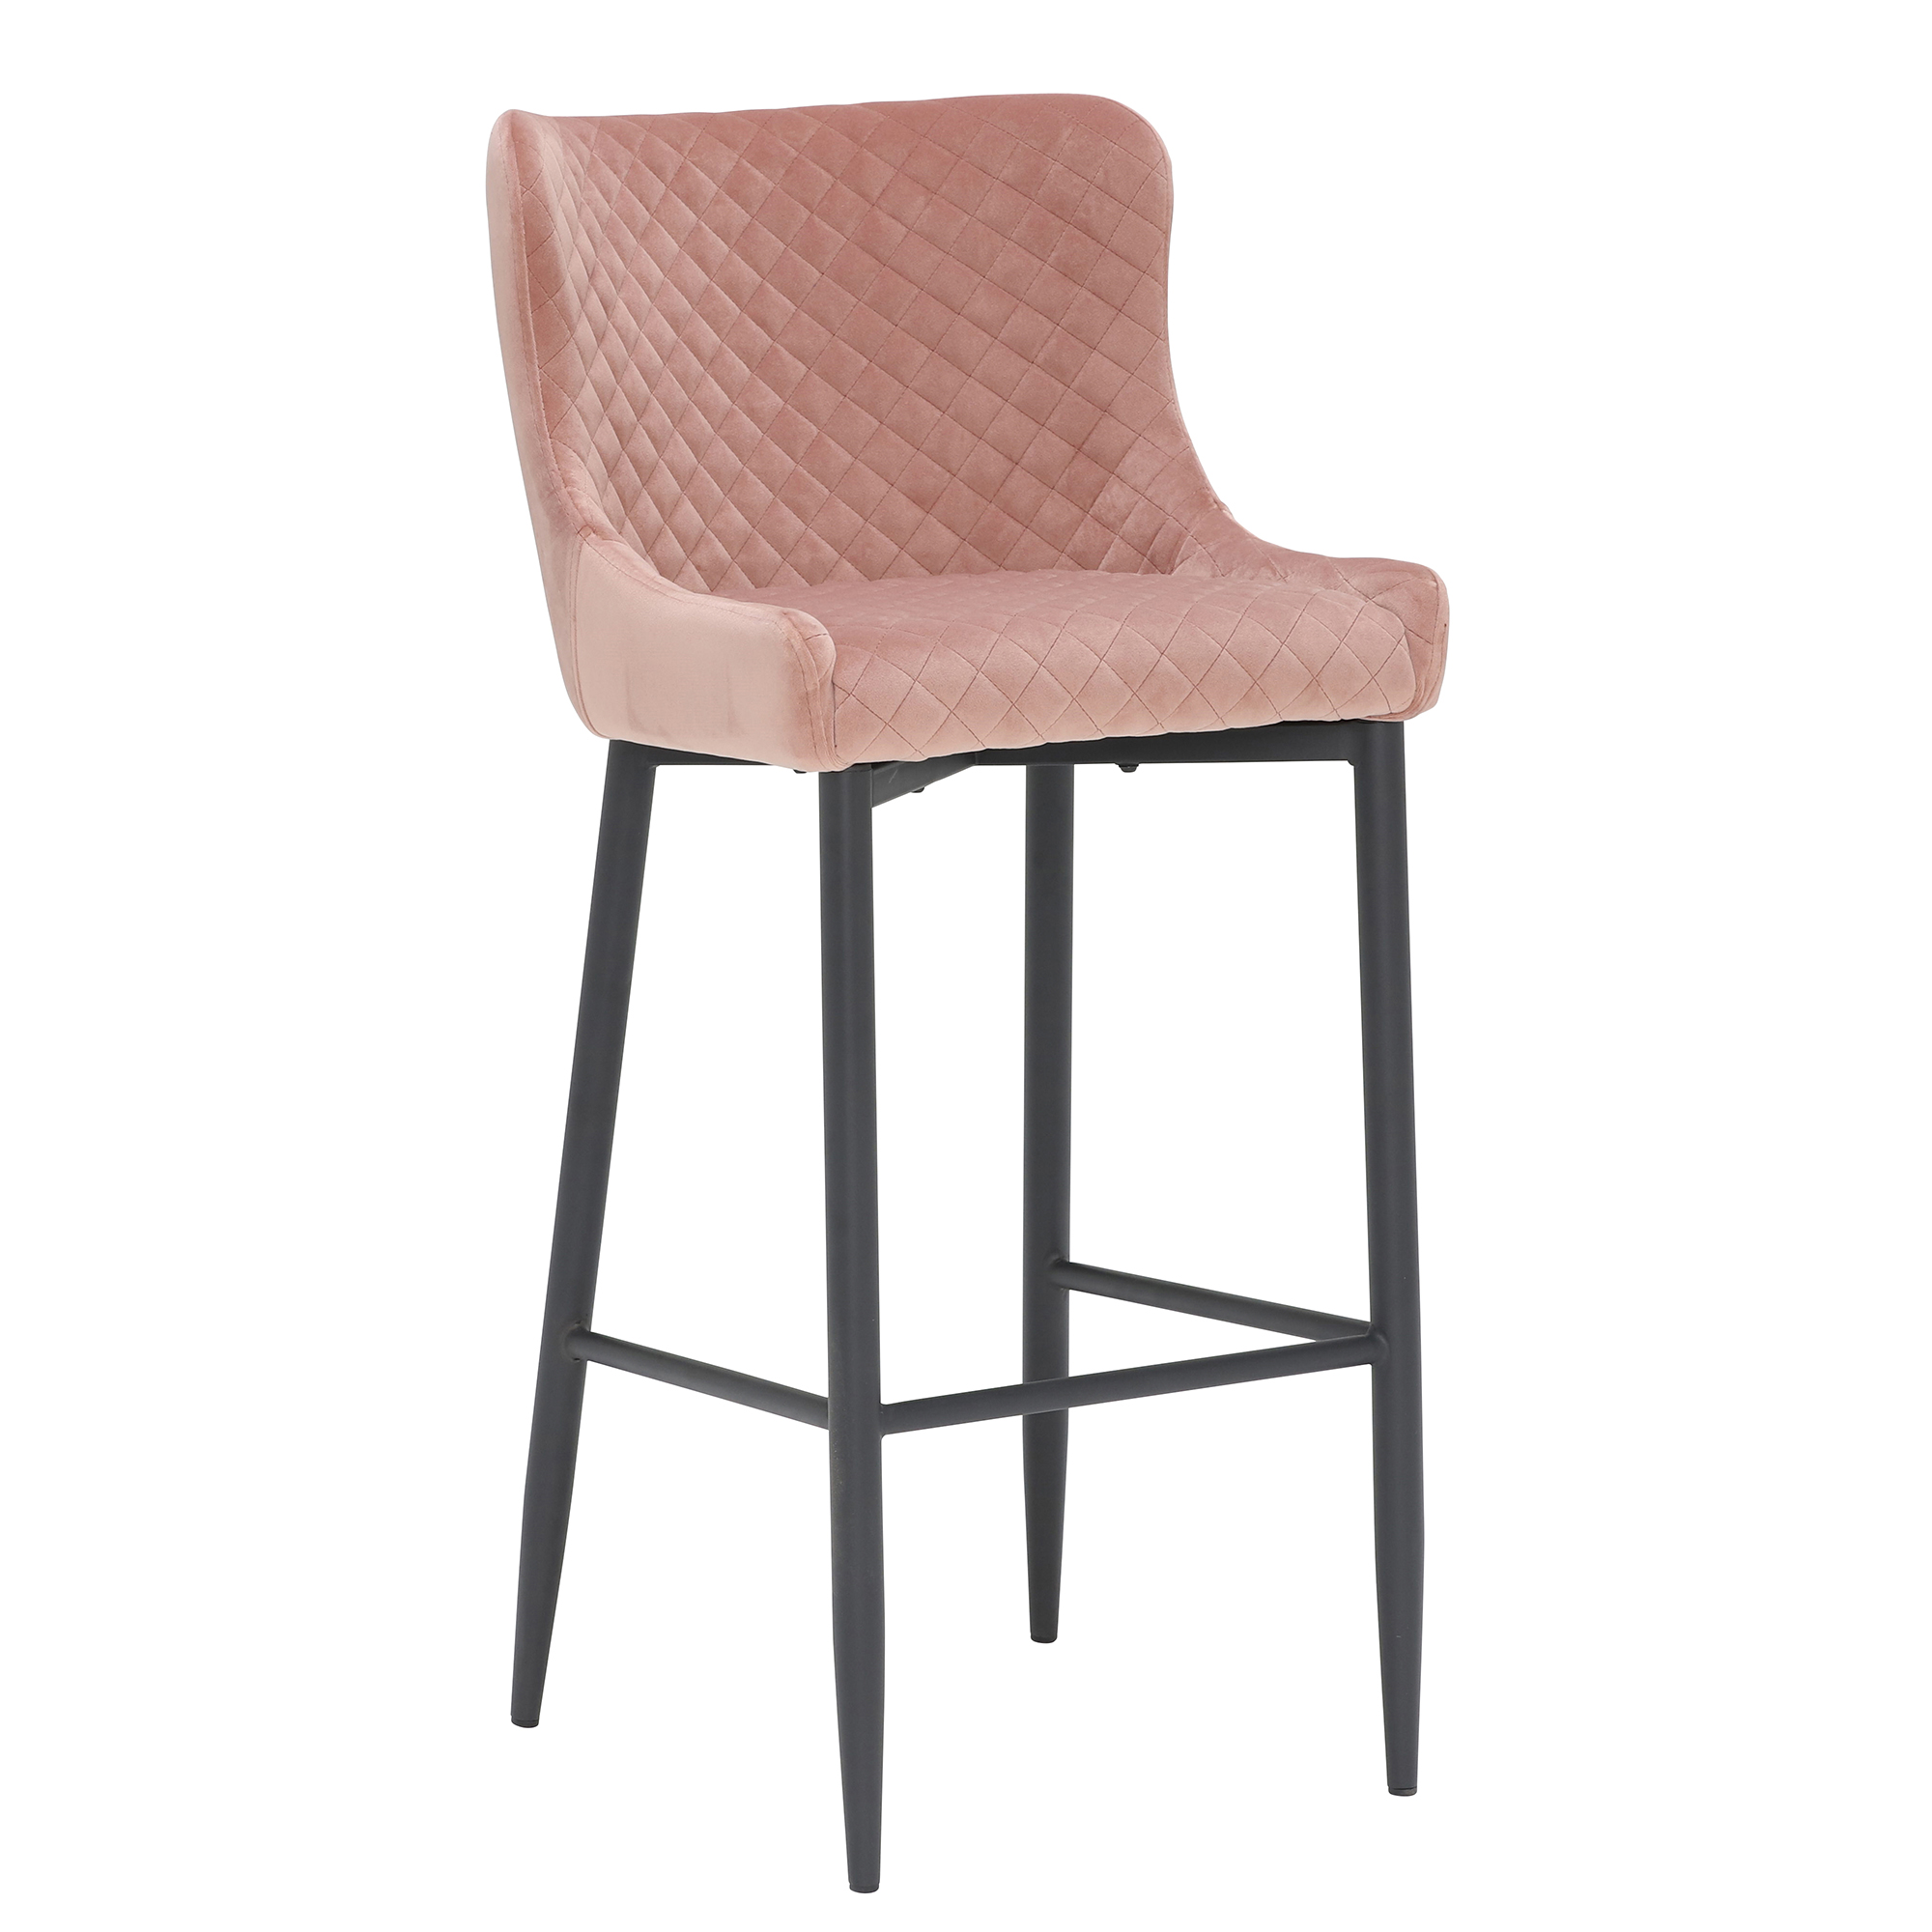 contemporary design puree fabric upholstered bar stool